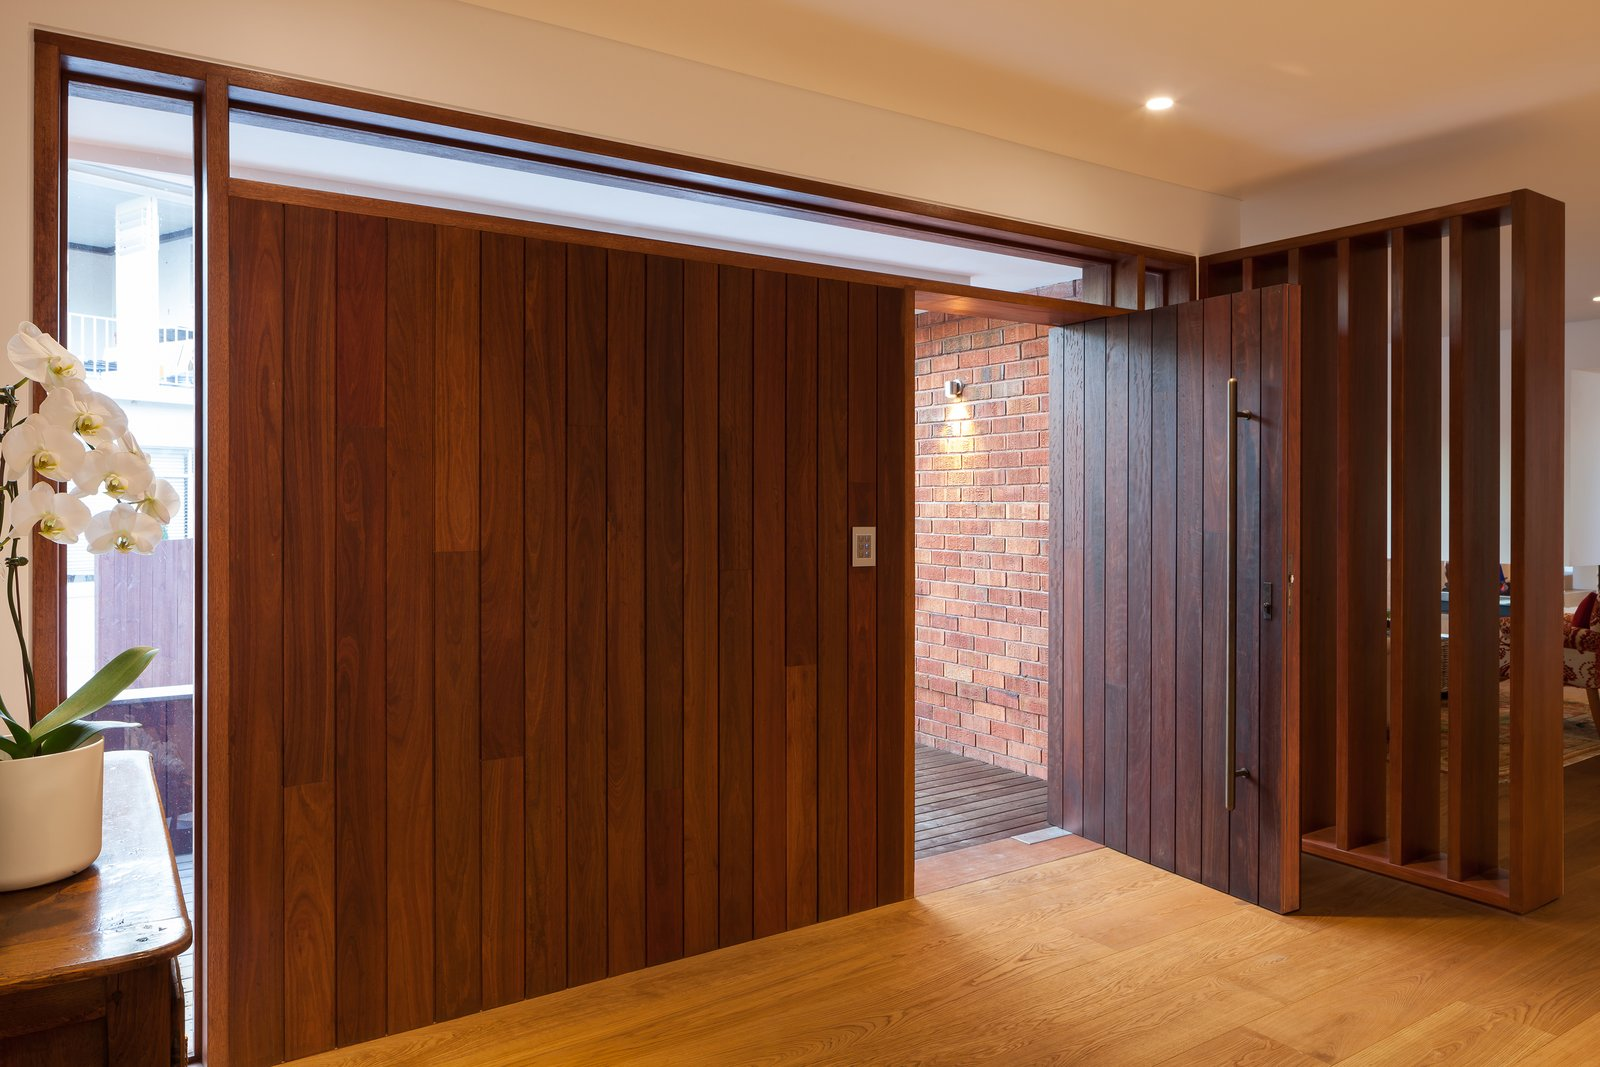 New front Entry in existing dwelling (Interior)  Castlecrag House by Gerard Page